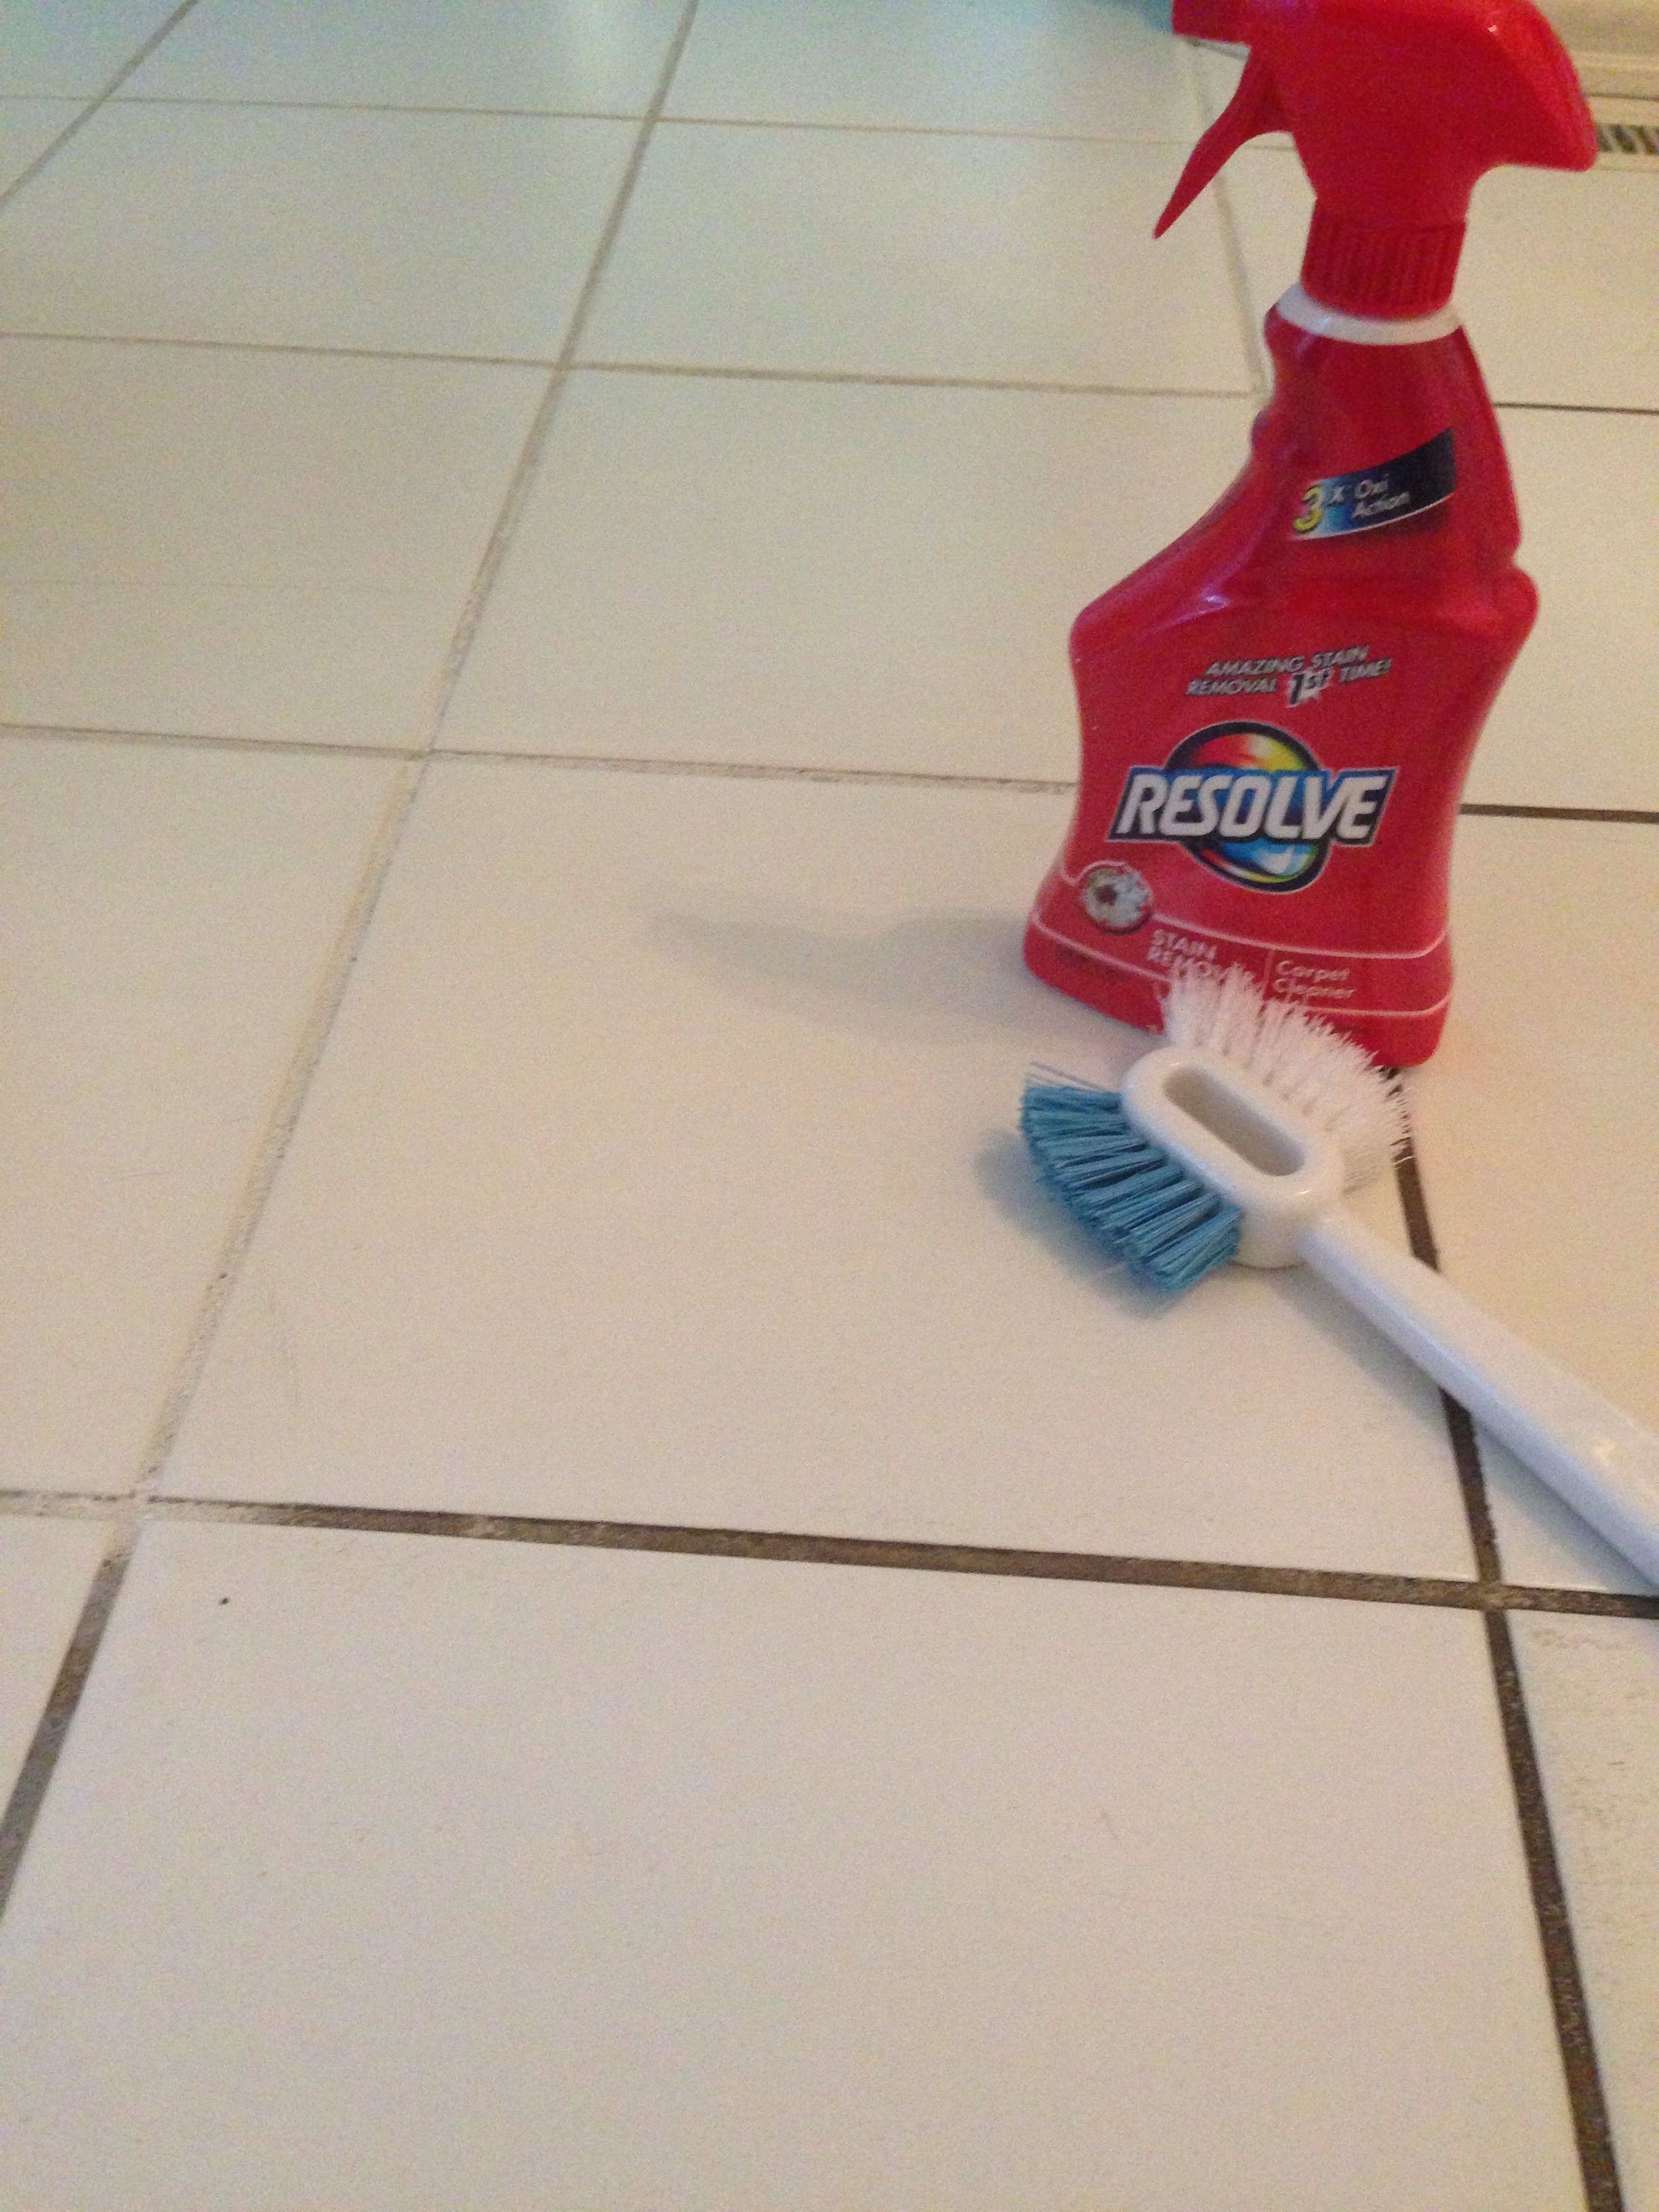 Resolve carpet cleaner to clean grout hydrogen peroxide grout i have been wanting to clean the grout between our kitchen tiles for the longest time dailygadgetfo Images